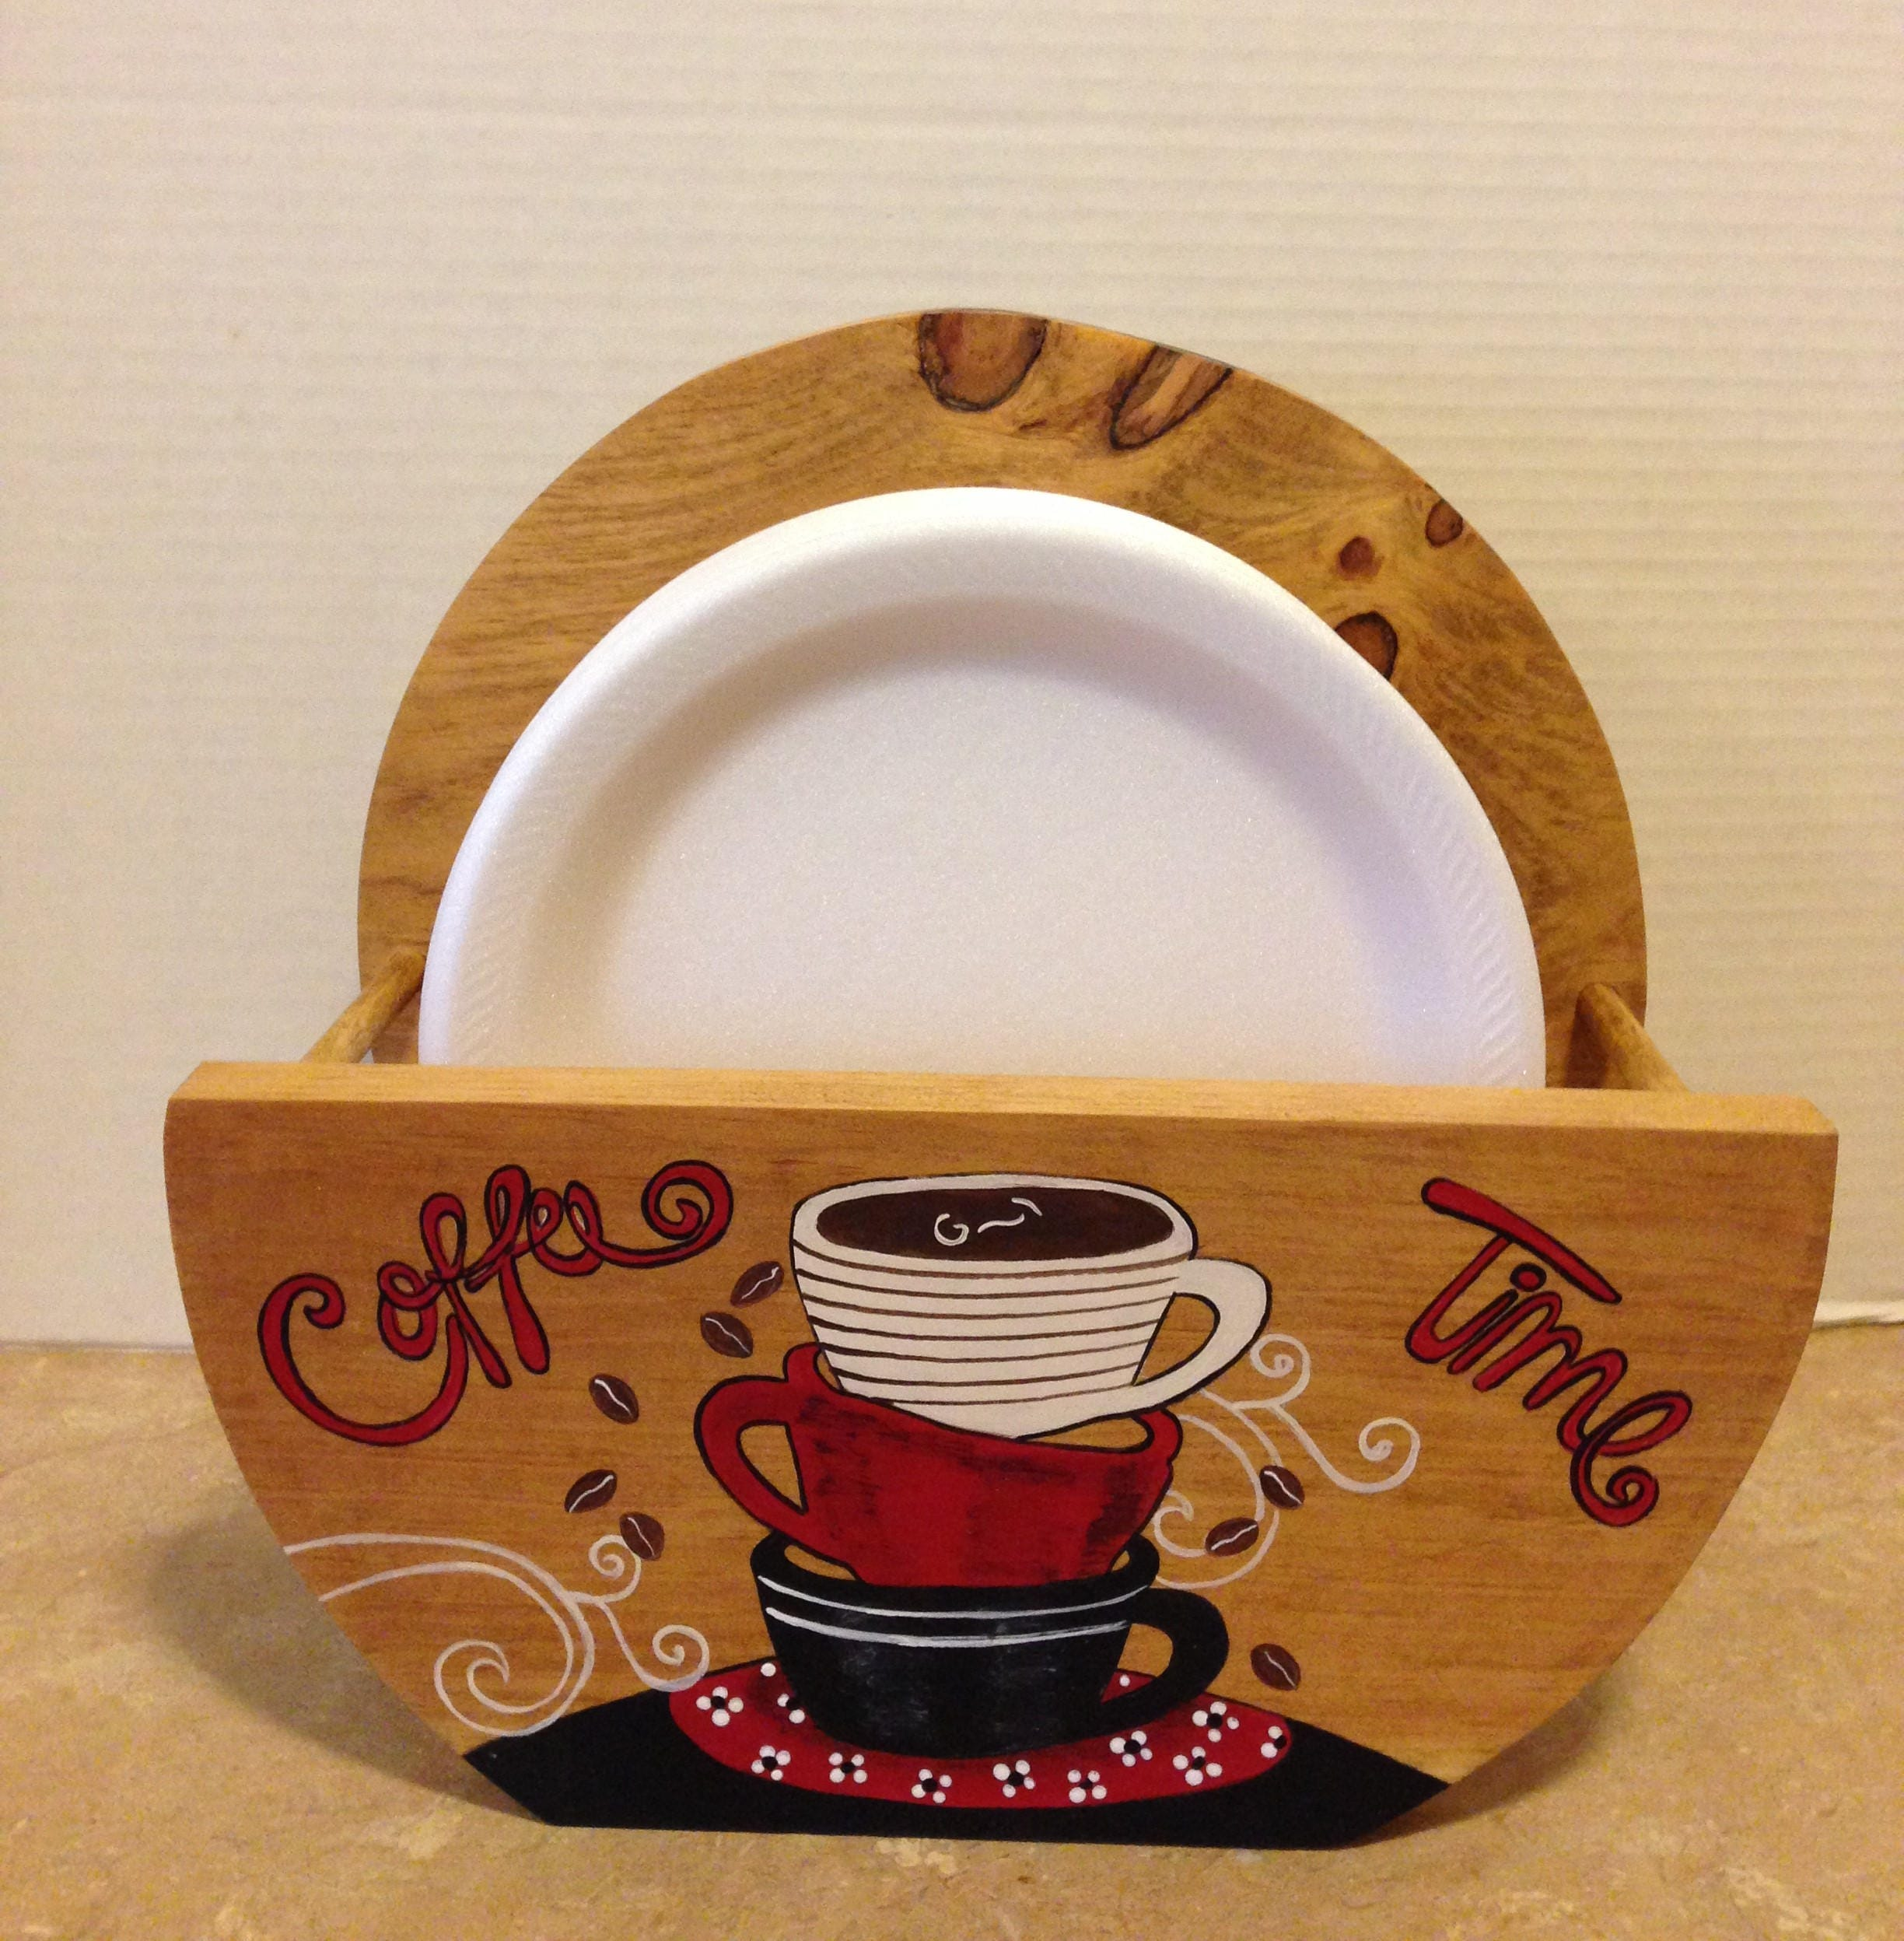 Paper Plate Holder Coffee Theme Coffee Decor Coffee Lovers Gift Bistro Decor Coffee Kitchen Theme Coffee Kitchen Holder for Plates & Paper Plate Holder Coffee Theme Coffee Decor Coffee Lovers Gift ...